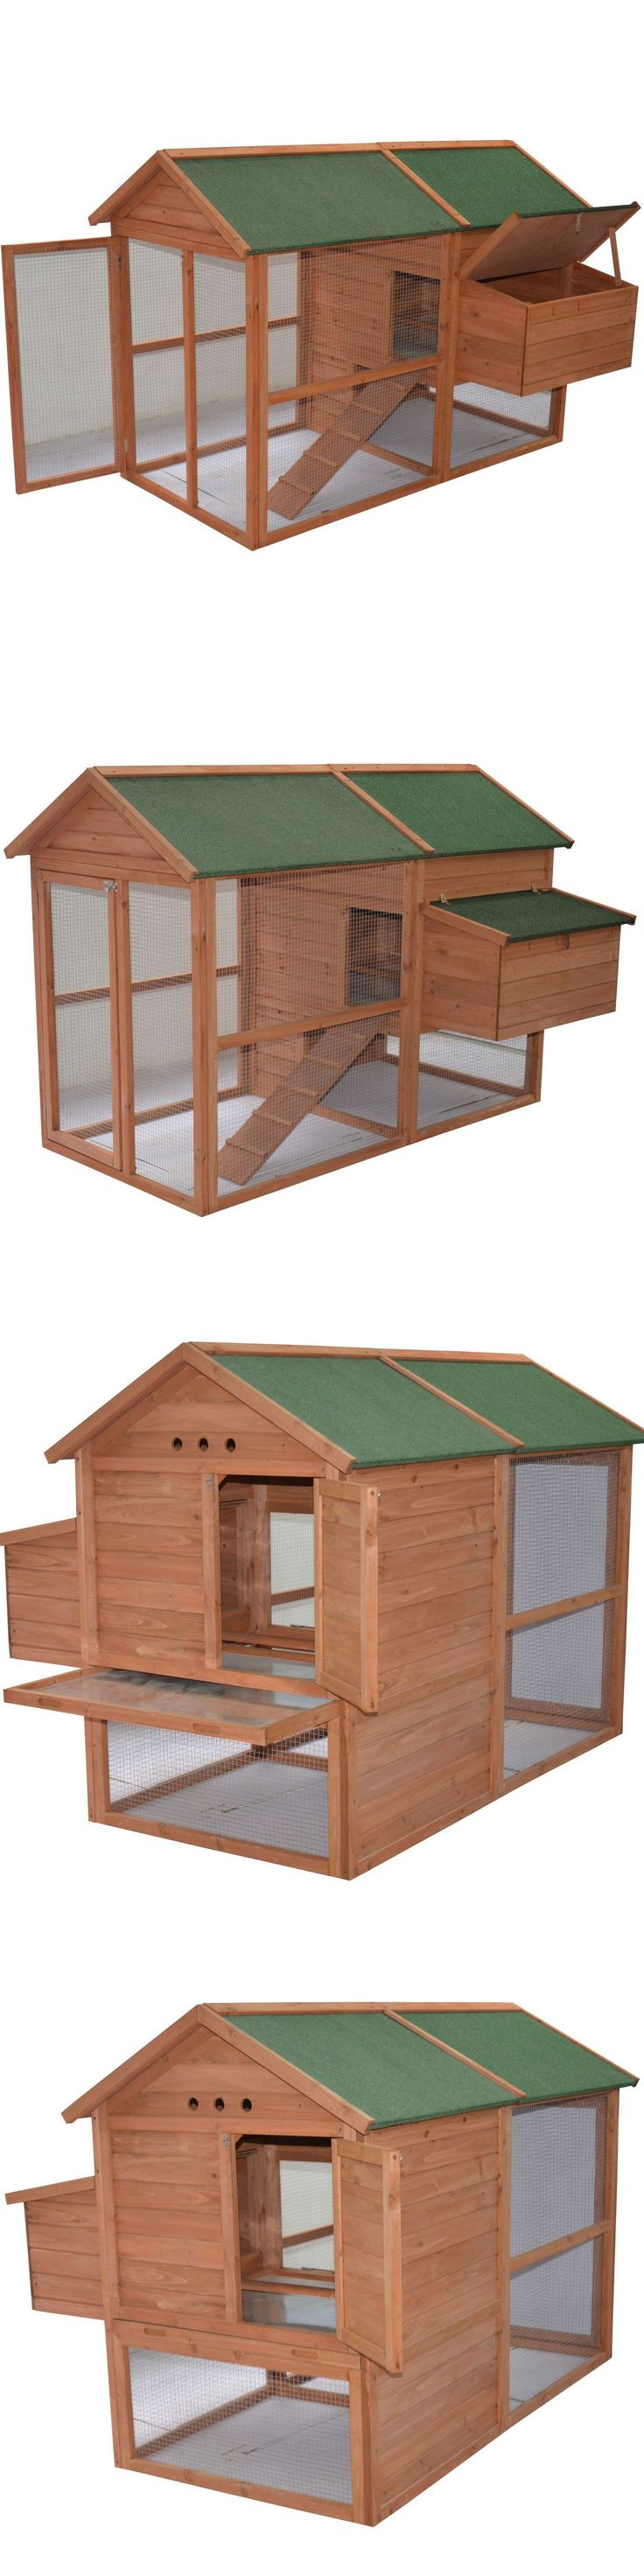 Backyard Poultry Supplies 177801: Backyard Wooden Chicken Coop Rabbit Hutch Cage Habitat Outdoor Run Pet Supplies BUY IT NOW ONLY: $398.34